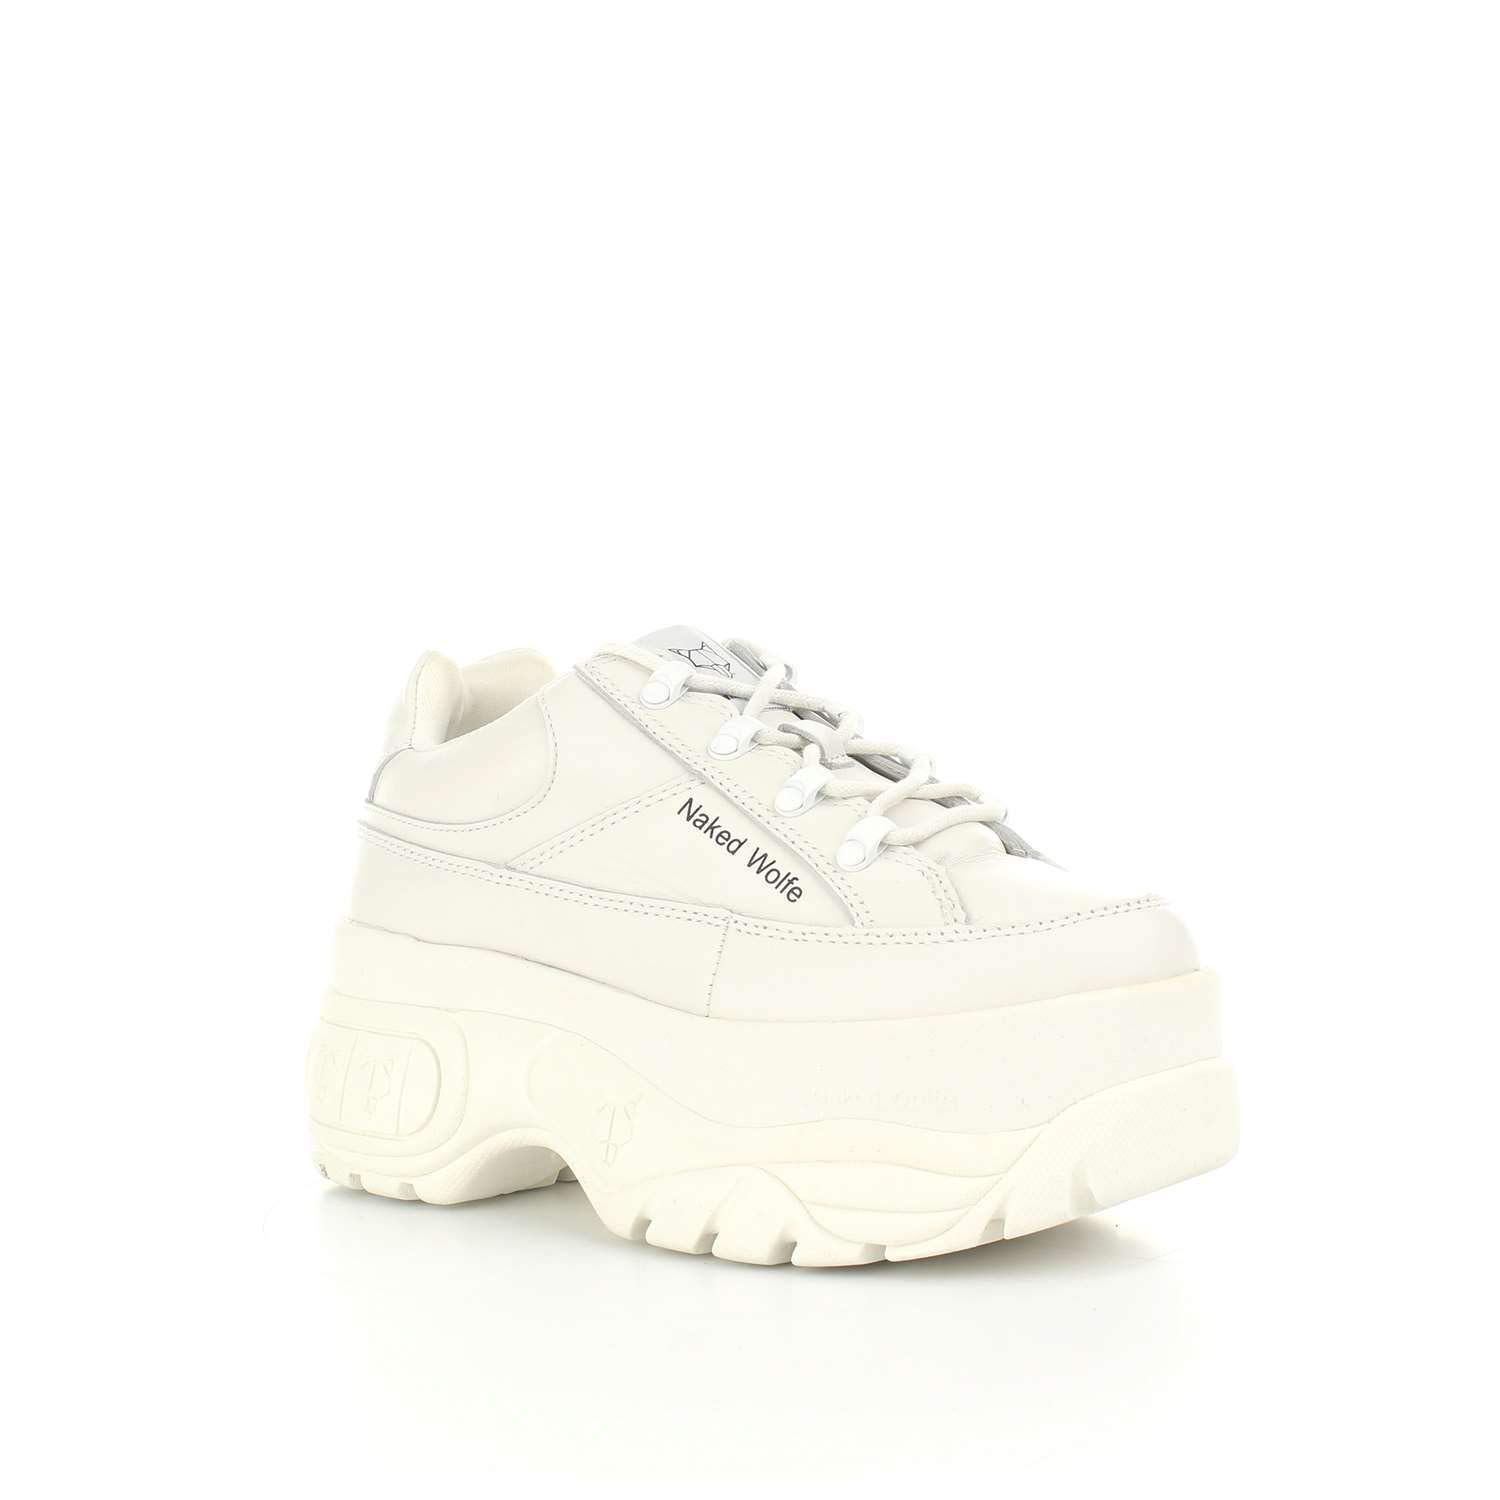 Amazon.com | NAKED WOLFE Low Womens Shoes with Sporty Platform Size 40 White | Hiking & Trekking